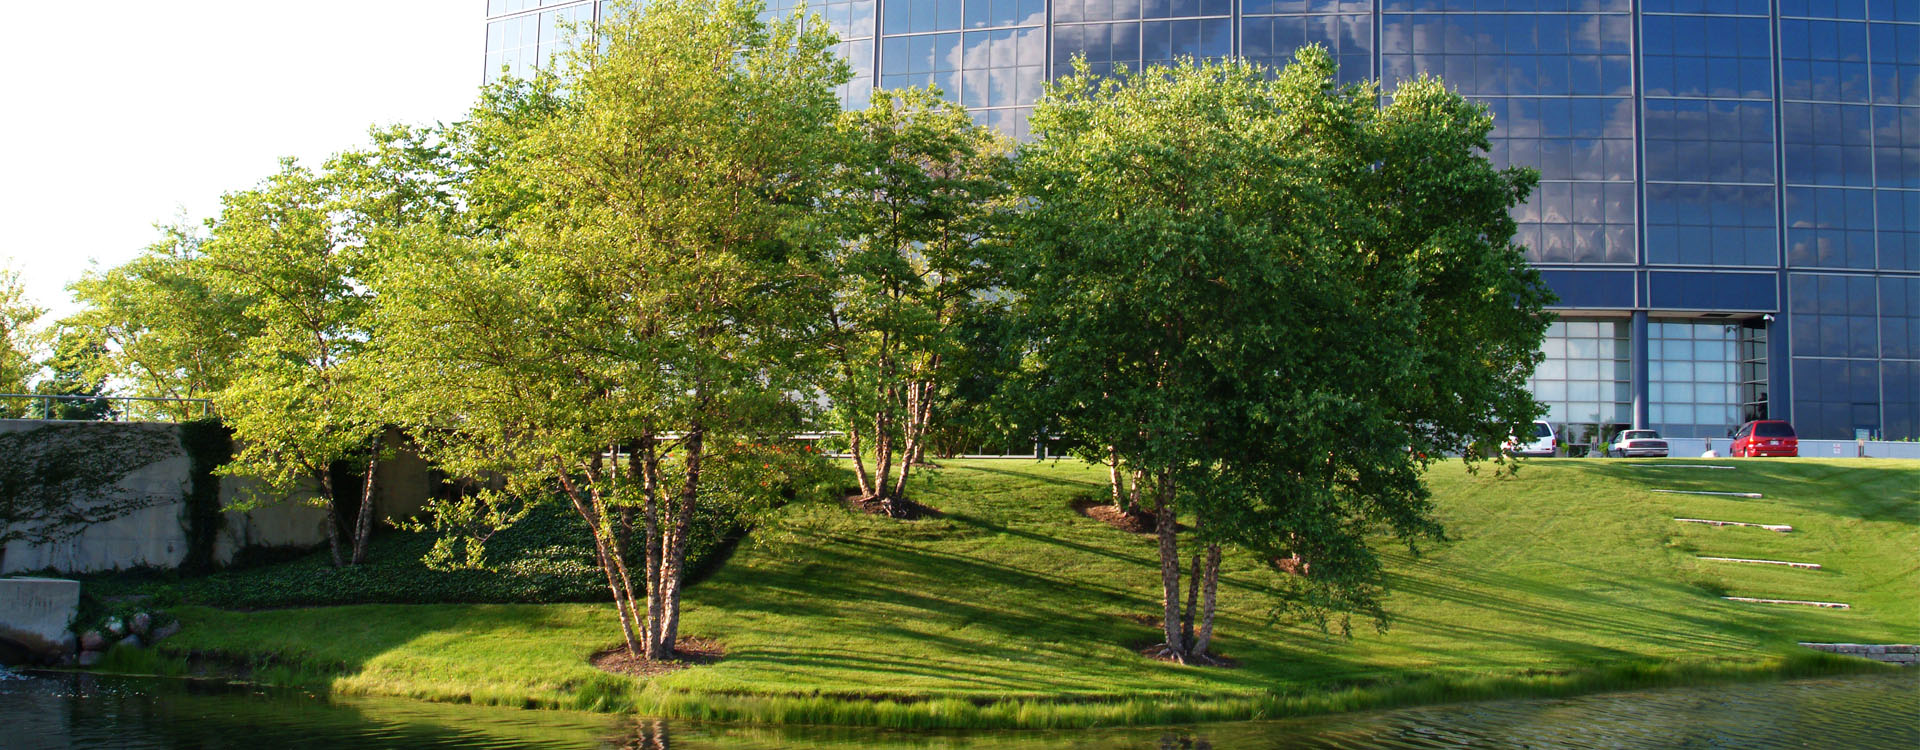 Landscaping Excellence, Creative Solutions, Quality Craftsmanship...